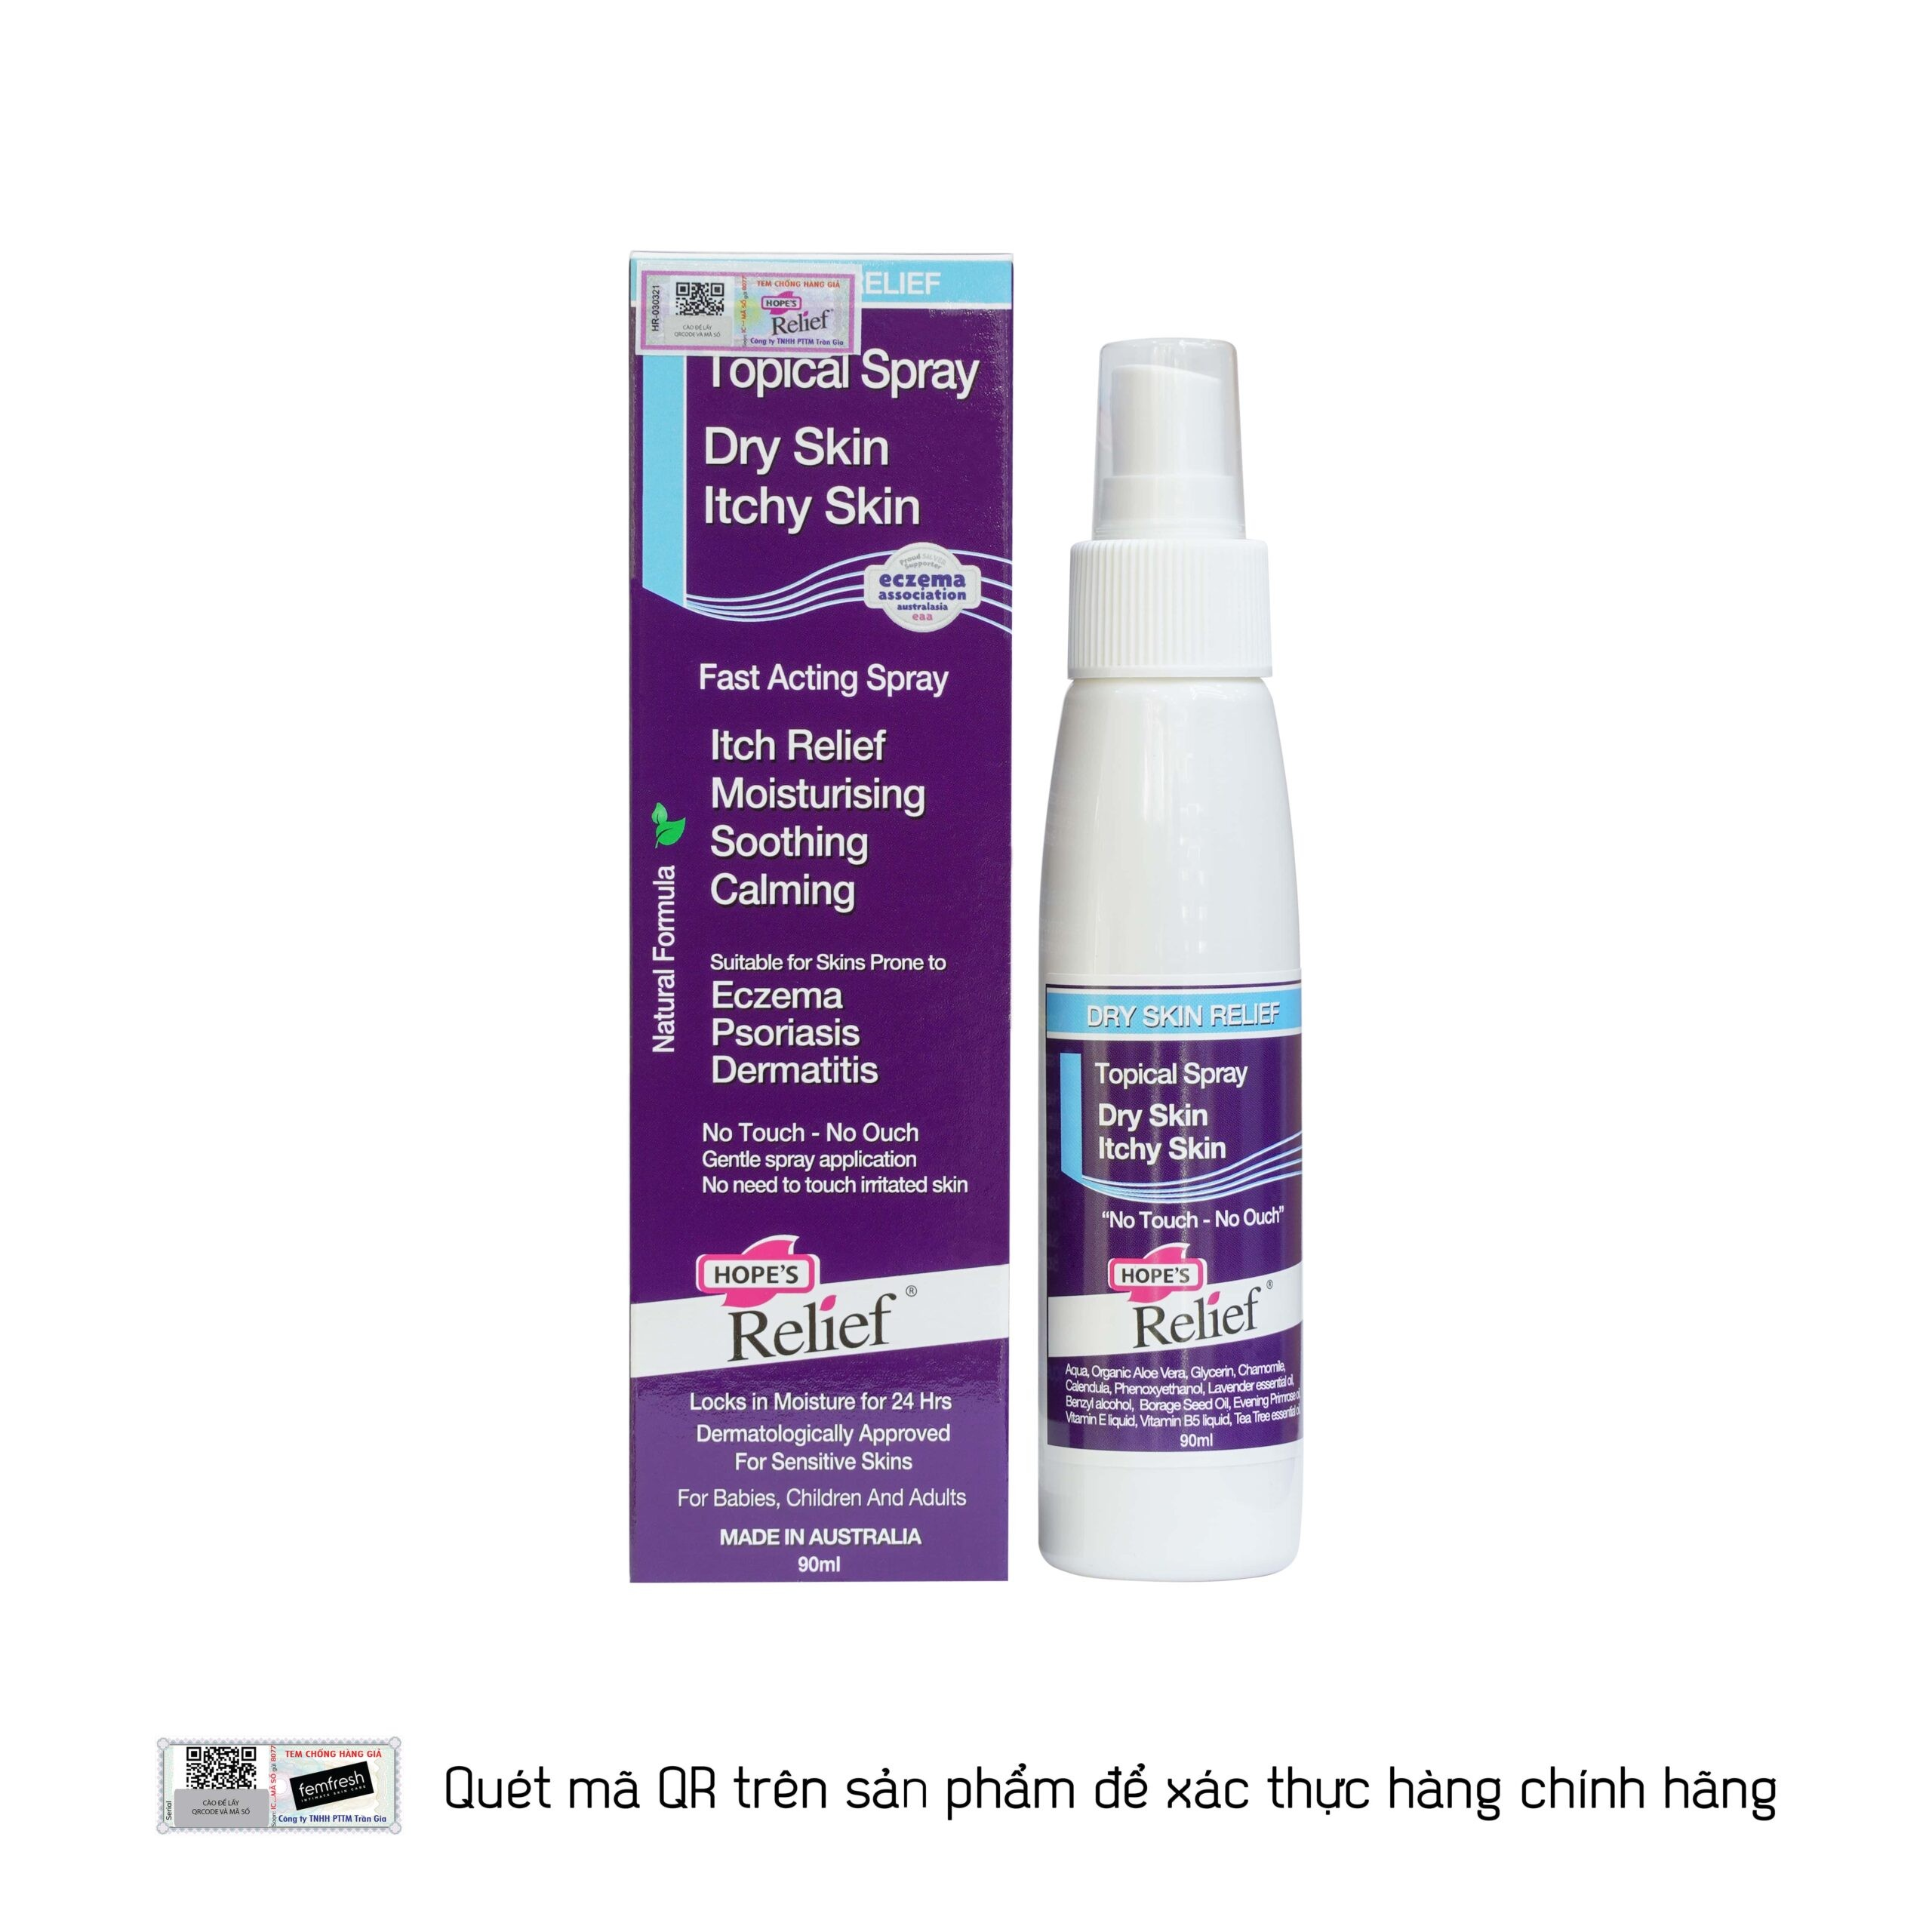 Xịt dưỡng ẩm Hope's Relief Topical Spray 90ml